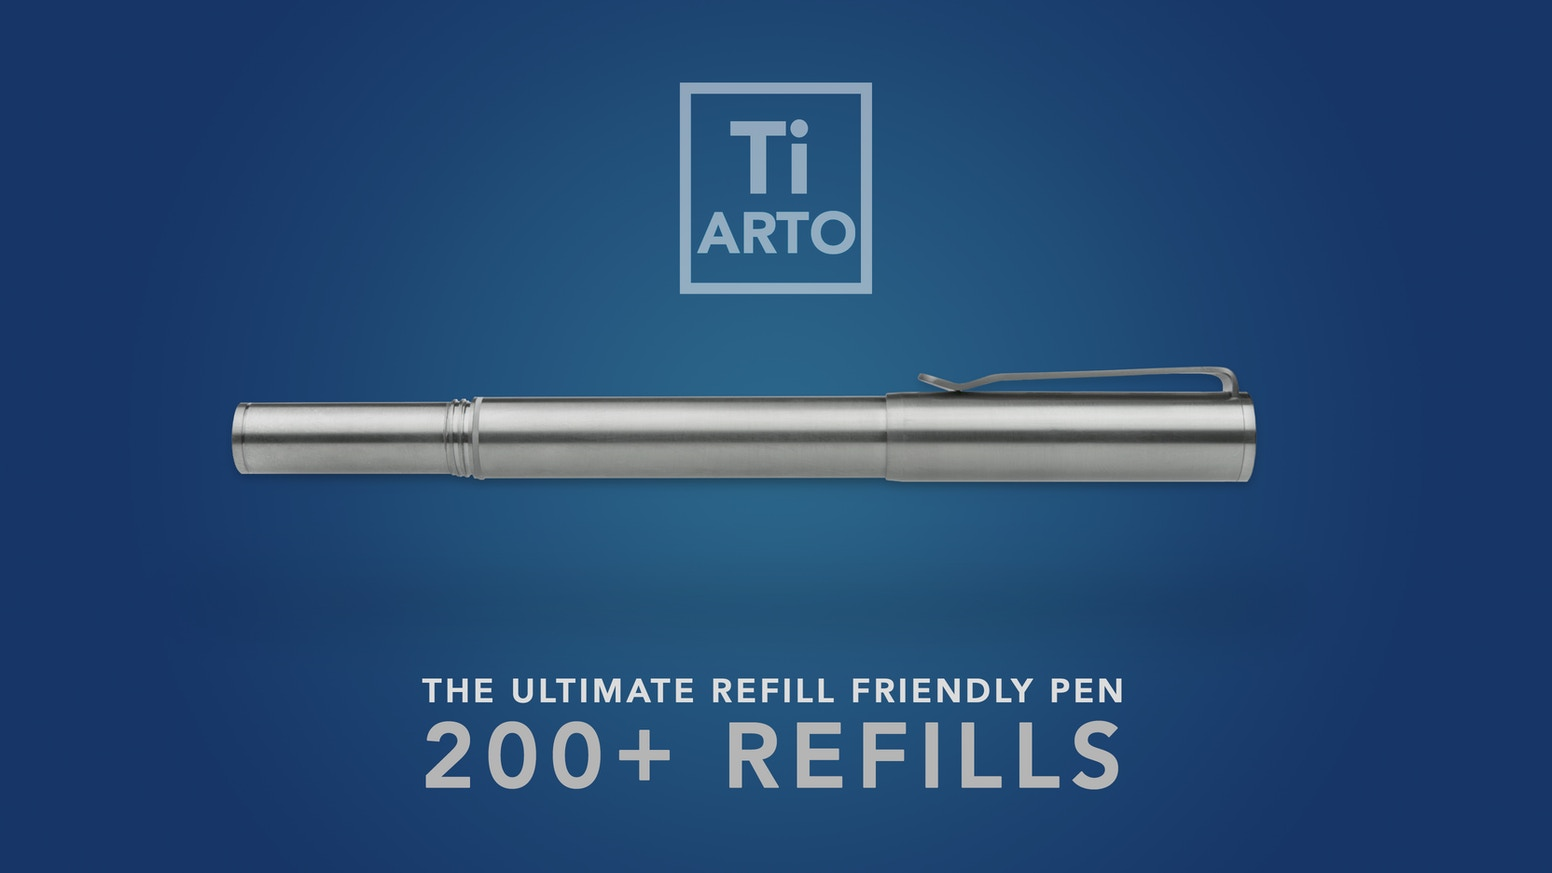 A timeless solid titanium pen that accepts over 200+ refills w/o any modifications, hacks, or tip wiggle + Free world wide shipping!